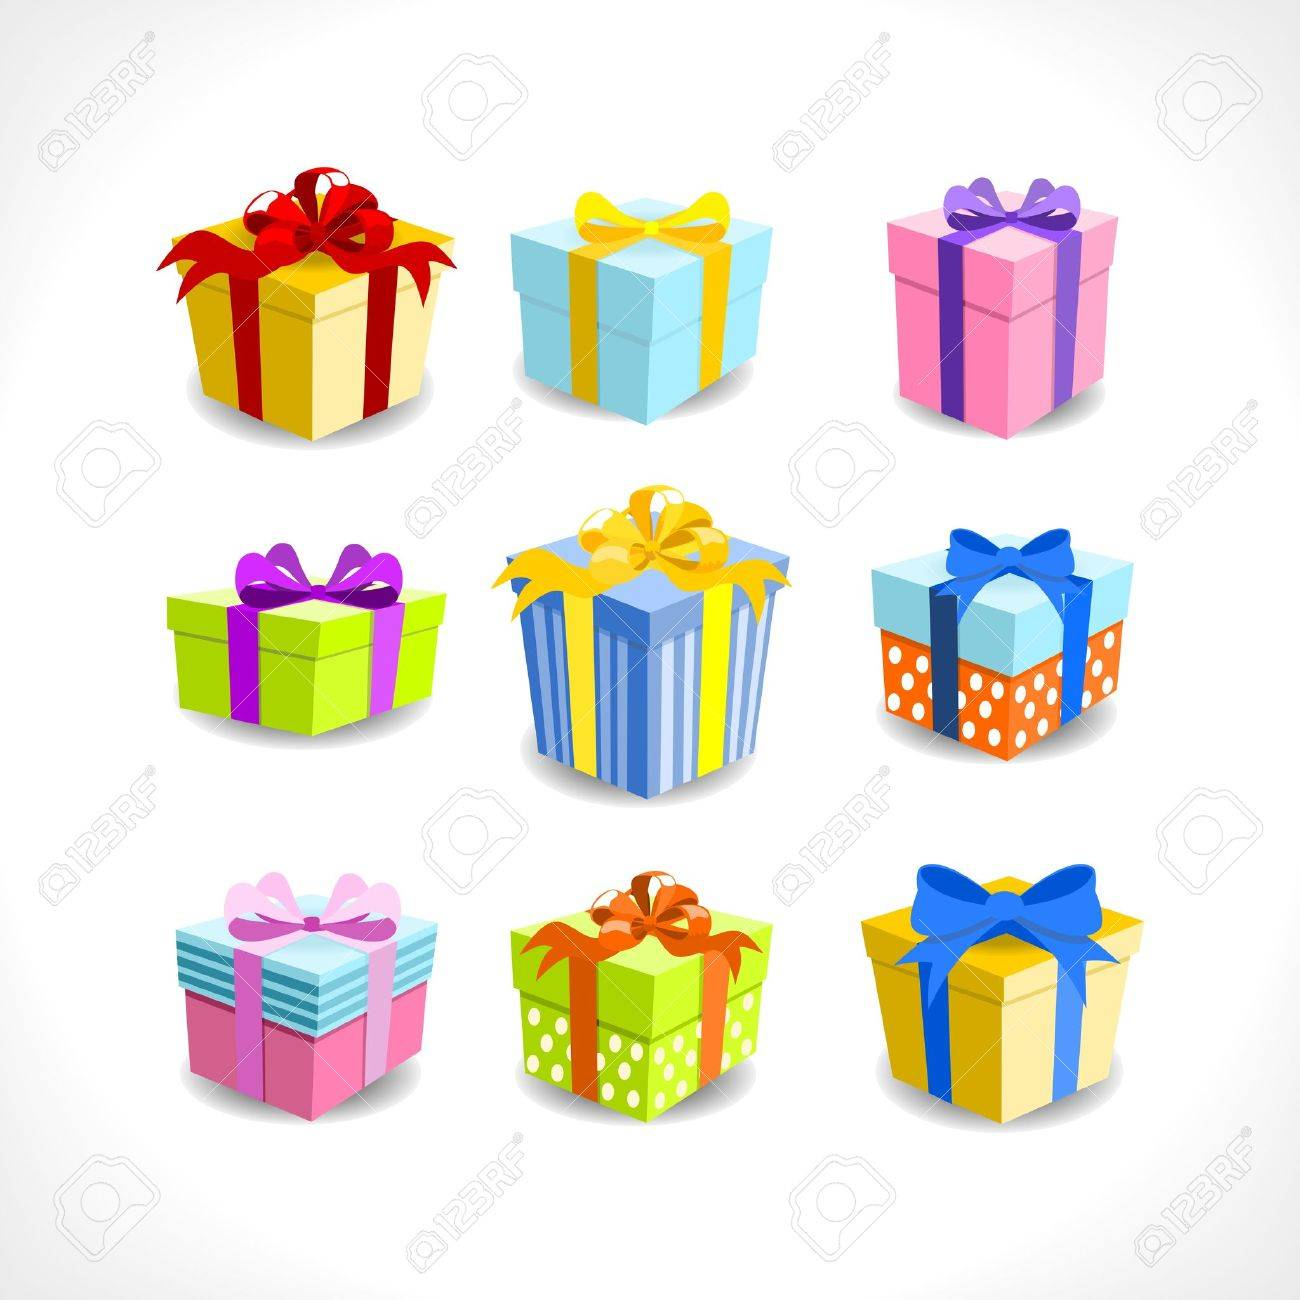 various colorful gifts with ribbons on white background Stock Vector - 14395822